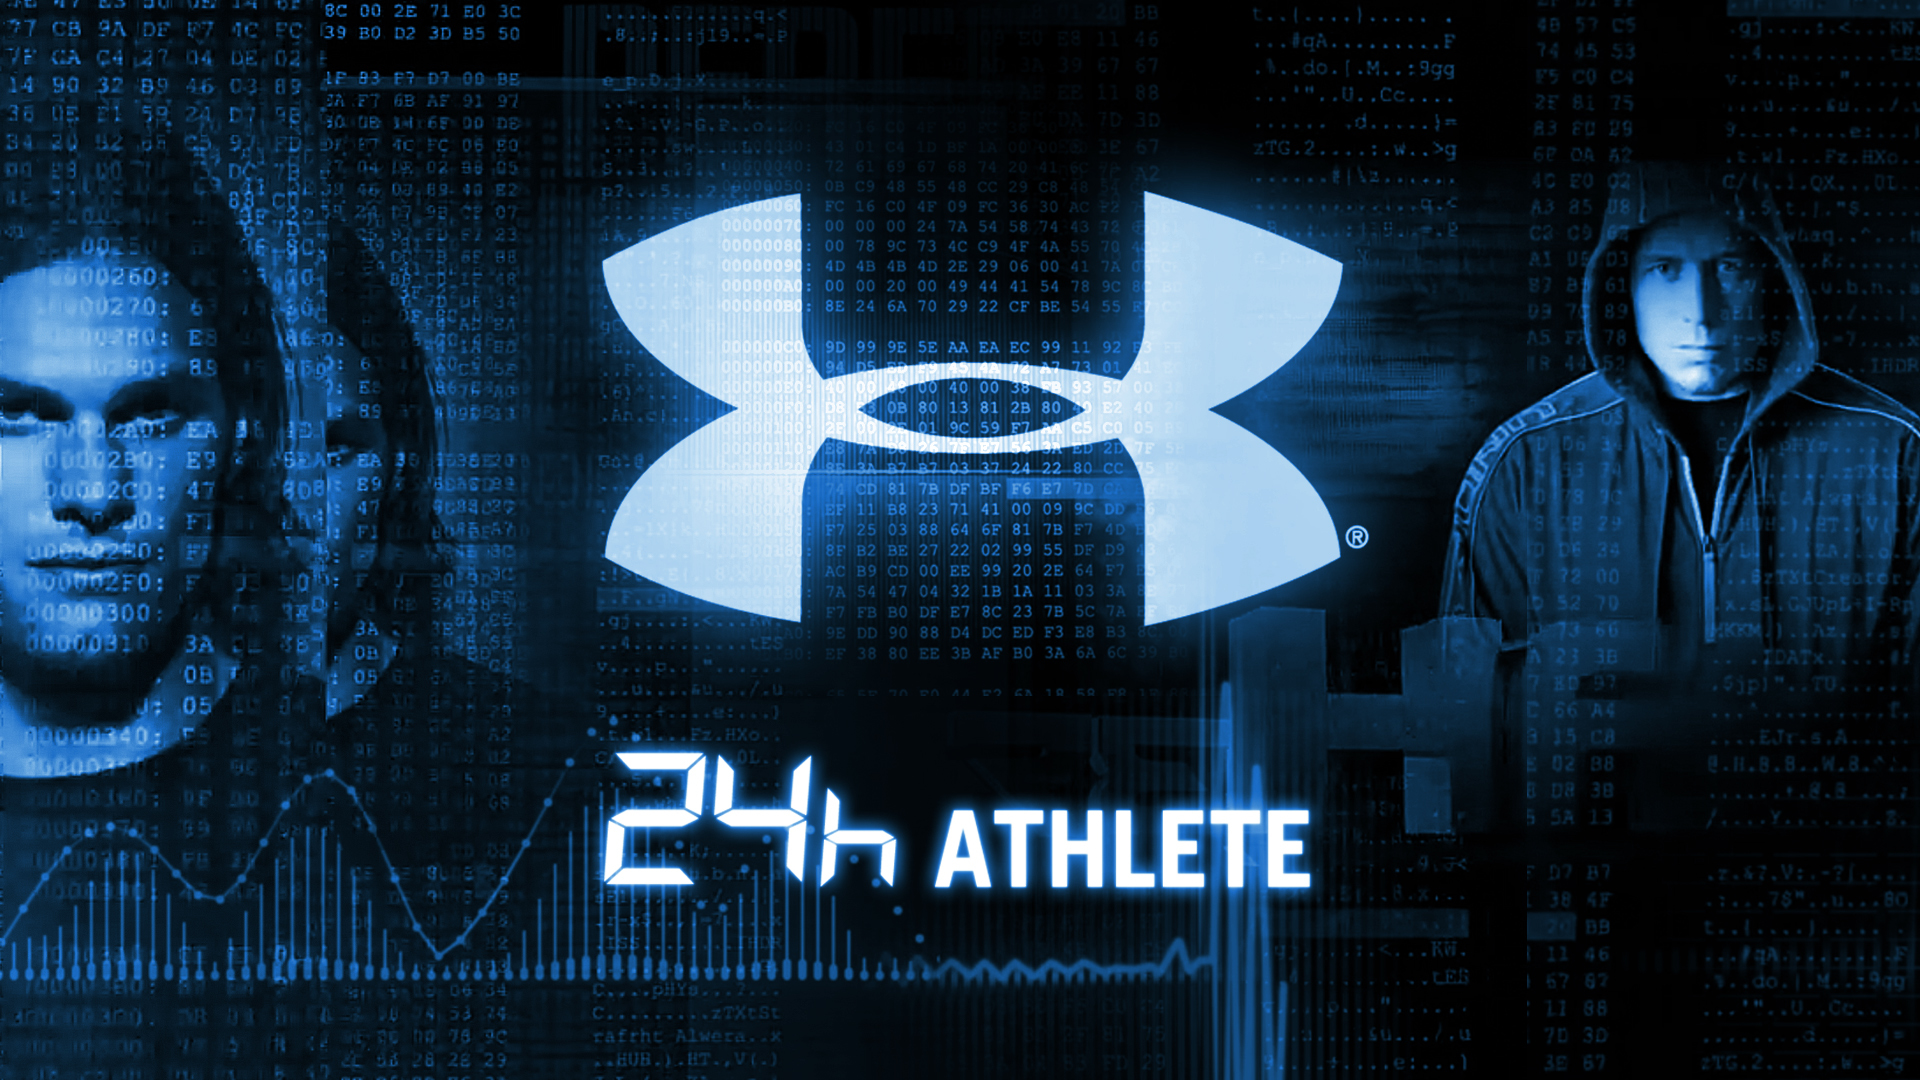 Under armour the 24 hour athlete wallpapers and images   wallpapers 1920x1080